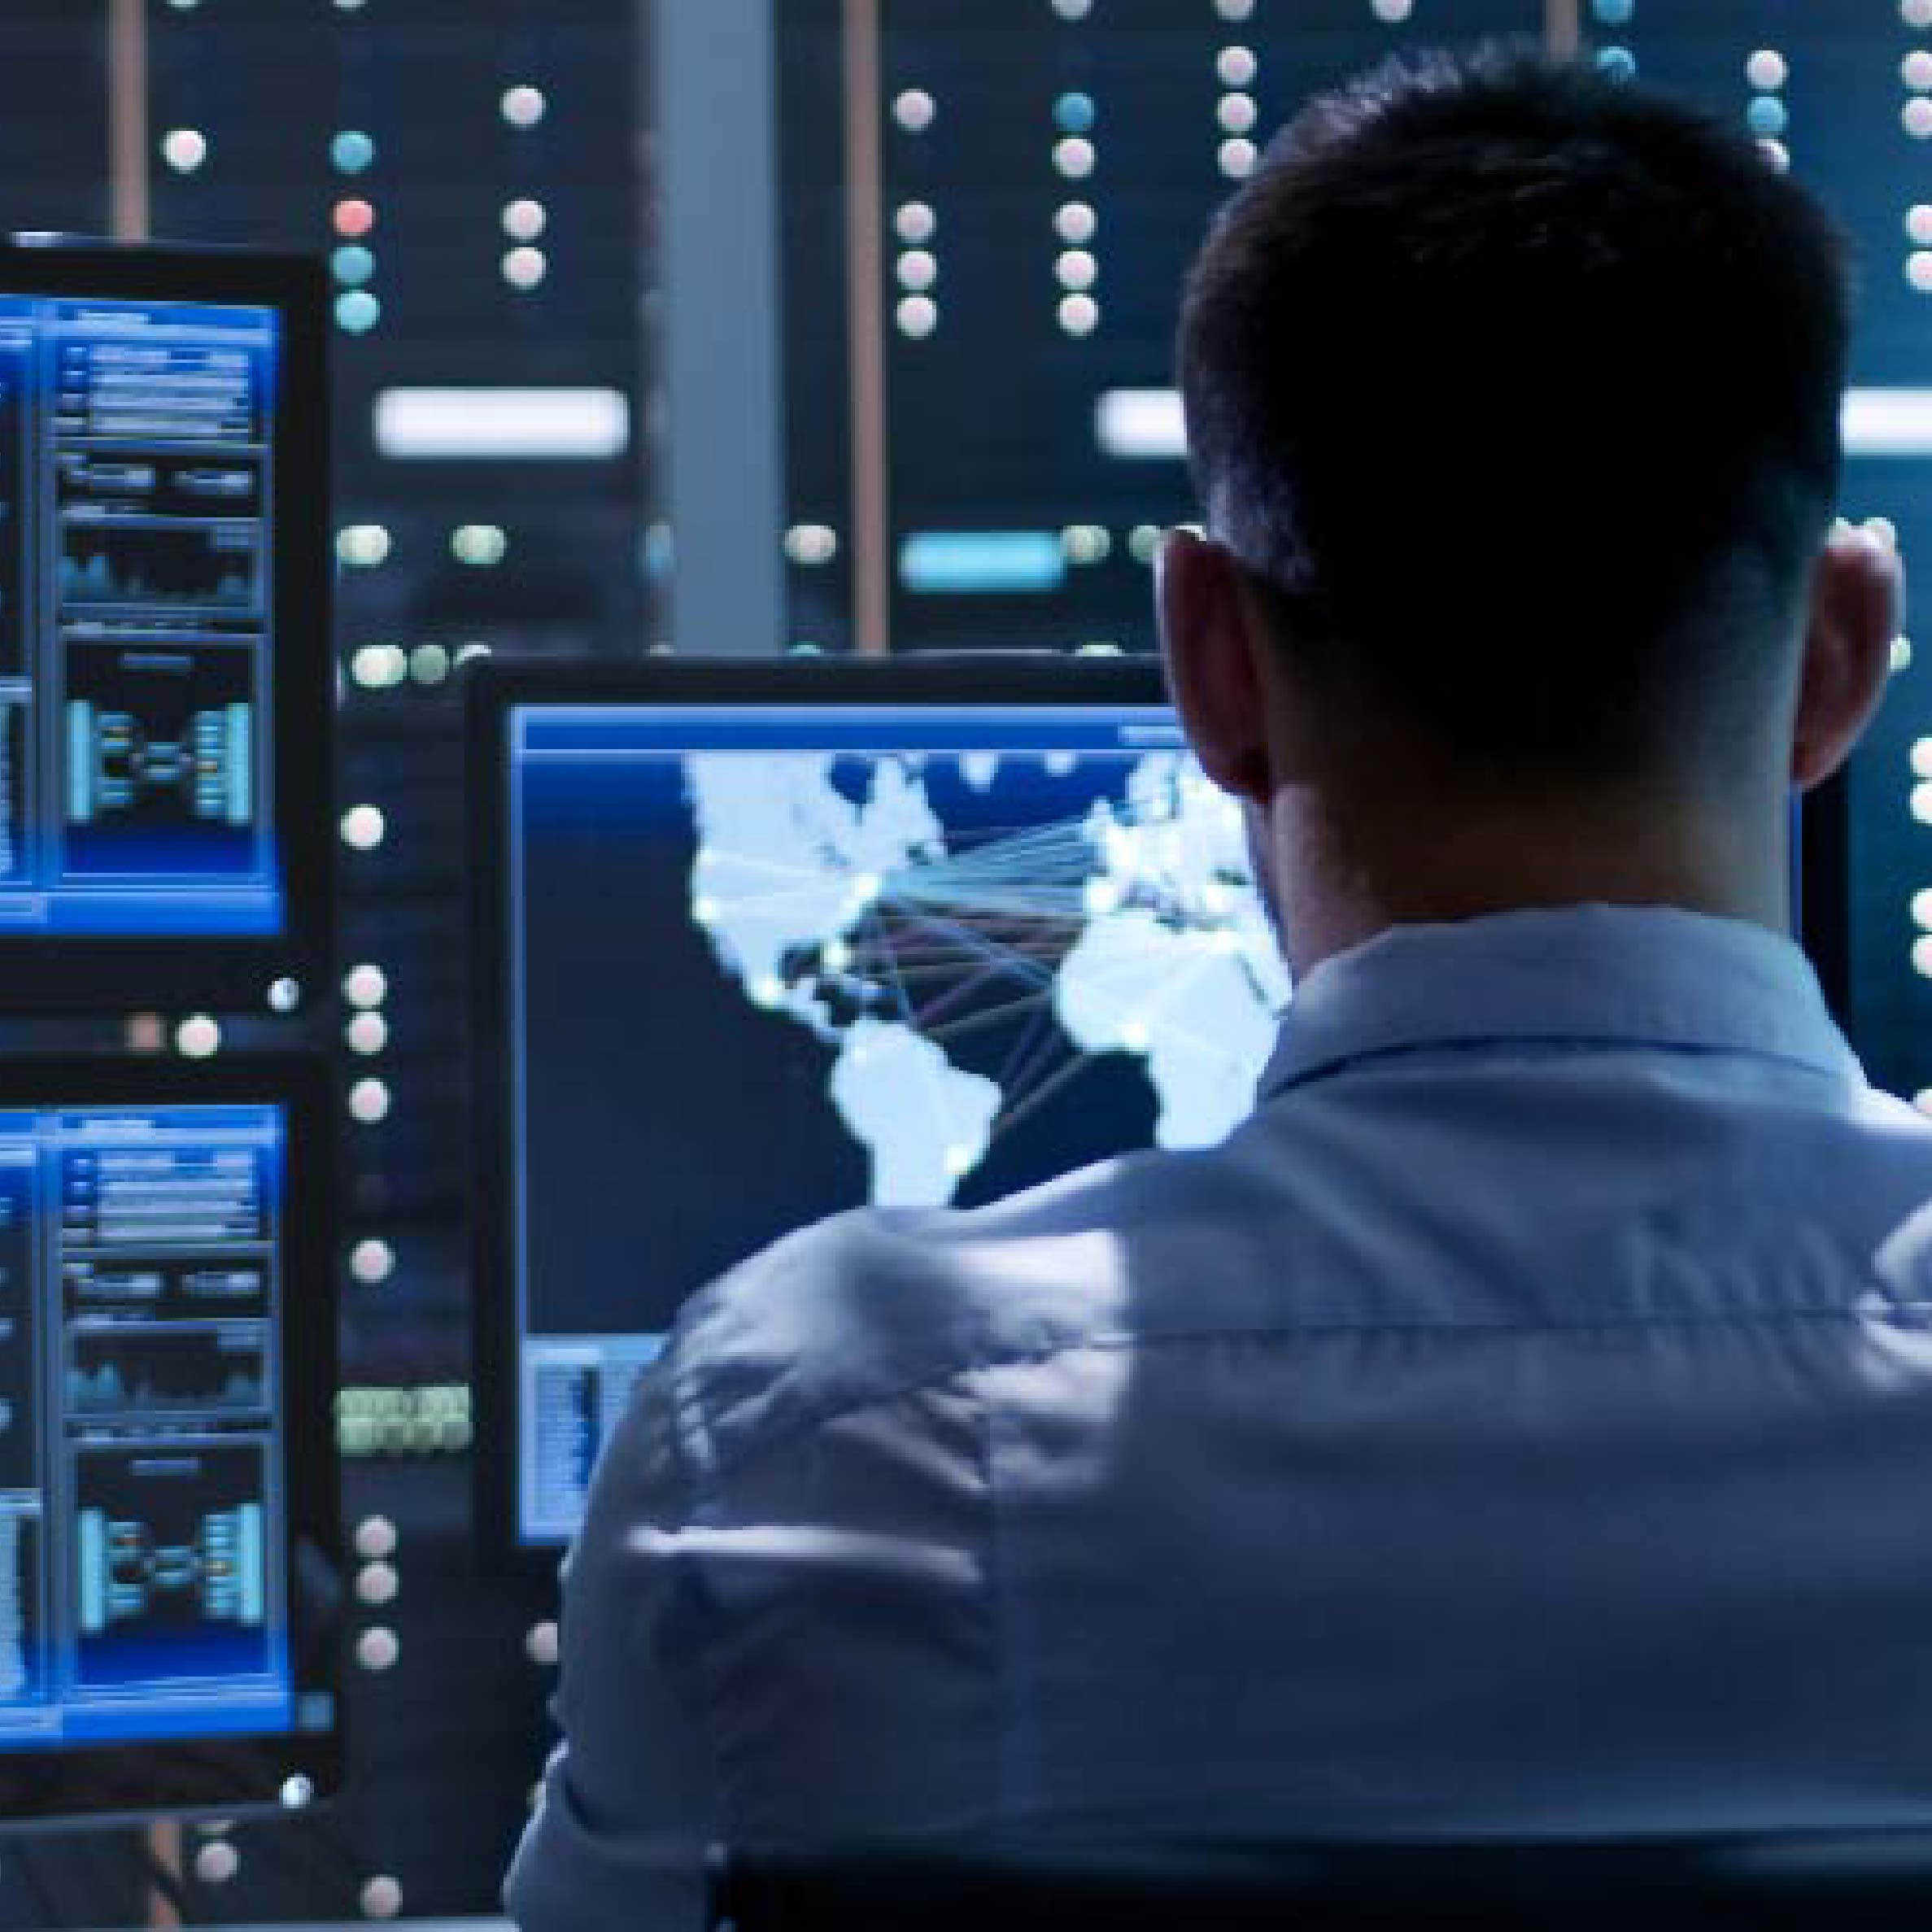 Cyber Chasse- Security Monitoring